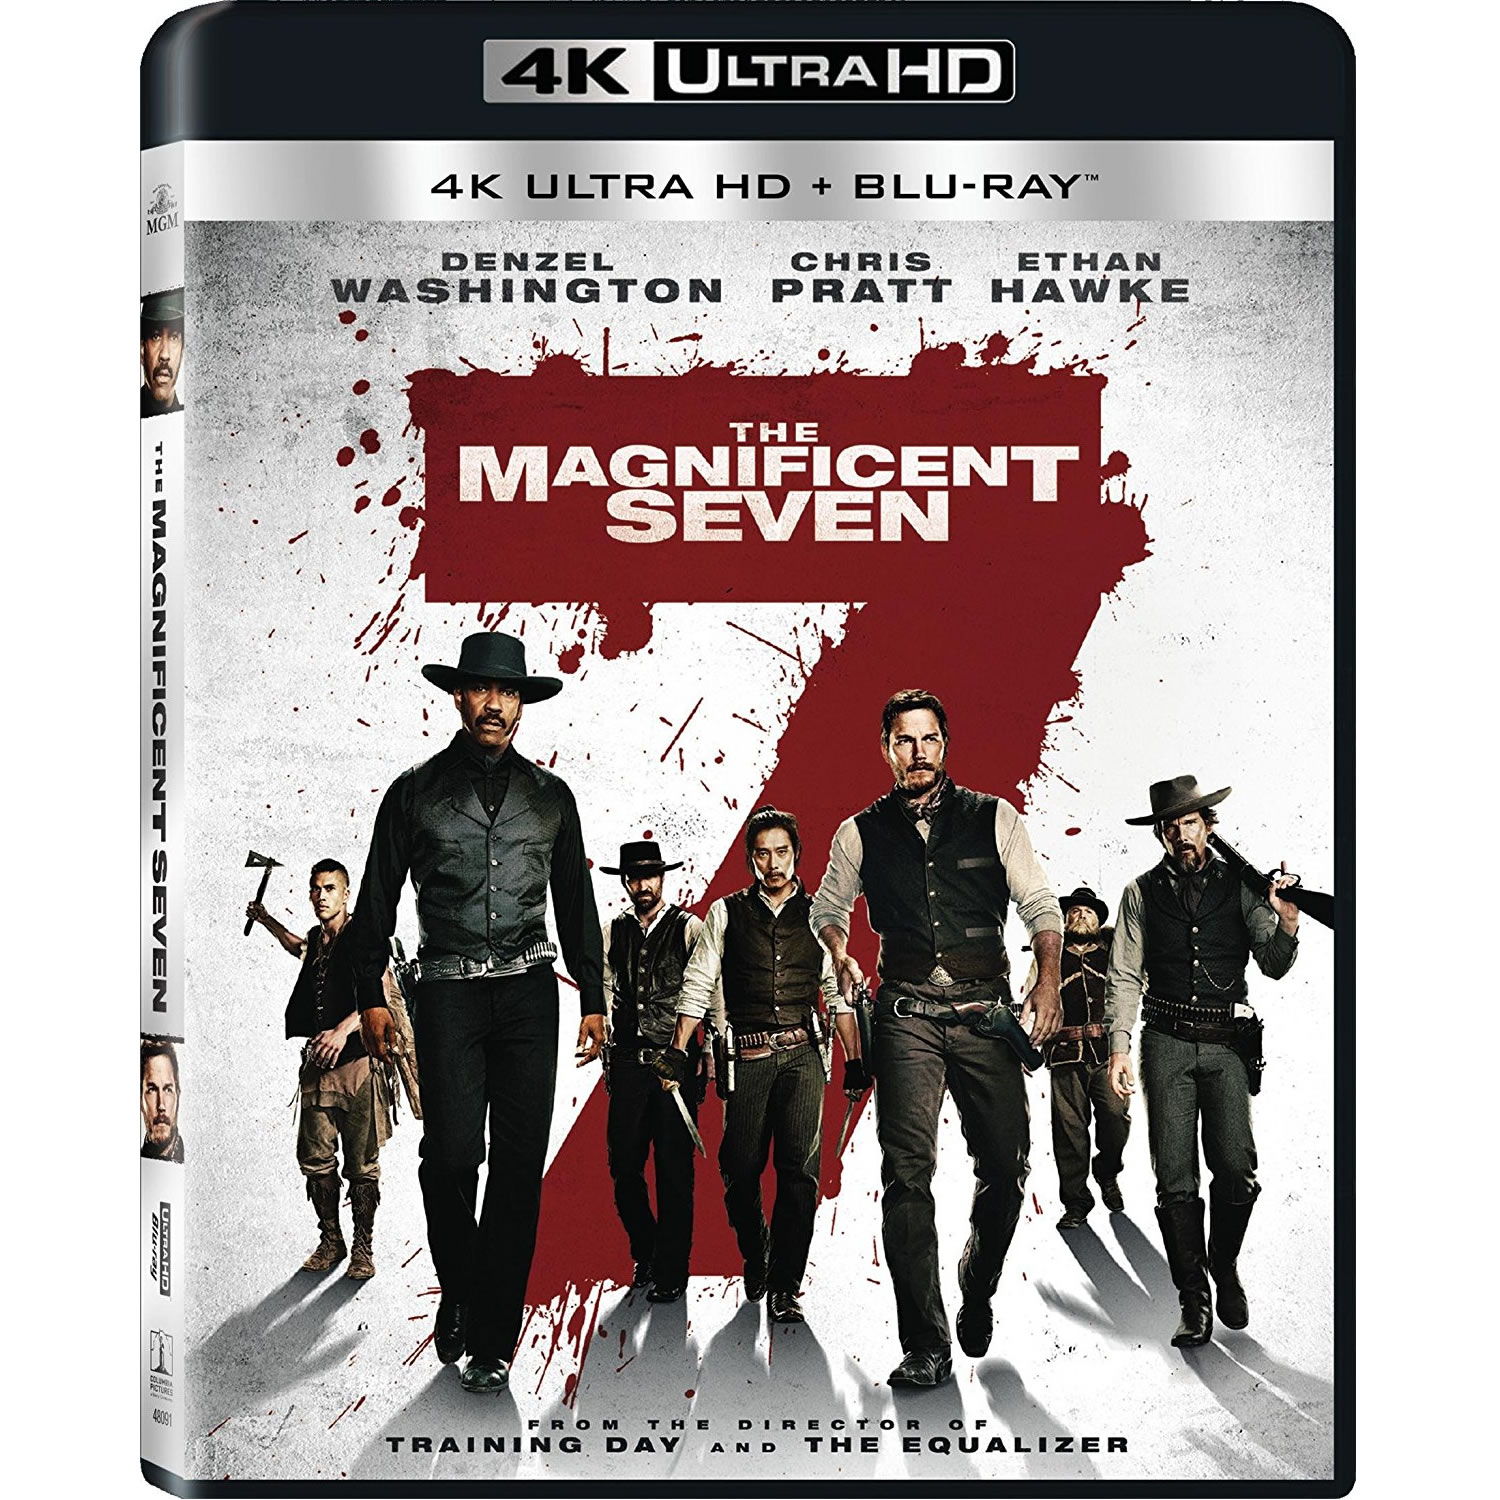 THE MAGNIFICENT SEVEN [2016] - ΚΑΙ ΟΙ 7 ΗΤΑΝ ΥΠΕΡΟΧΟΙ [2016] (4K UHD BLU-RAY + BLU-RAY)